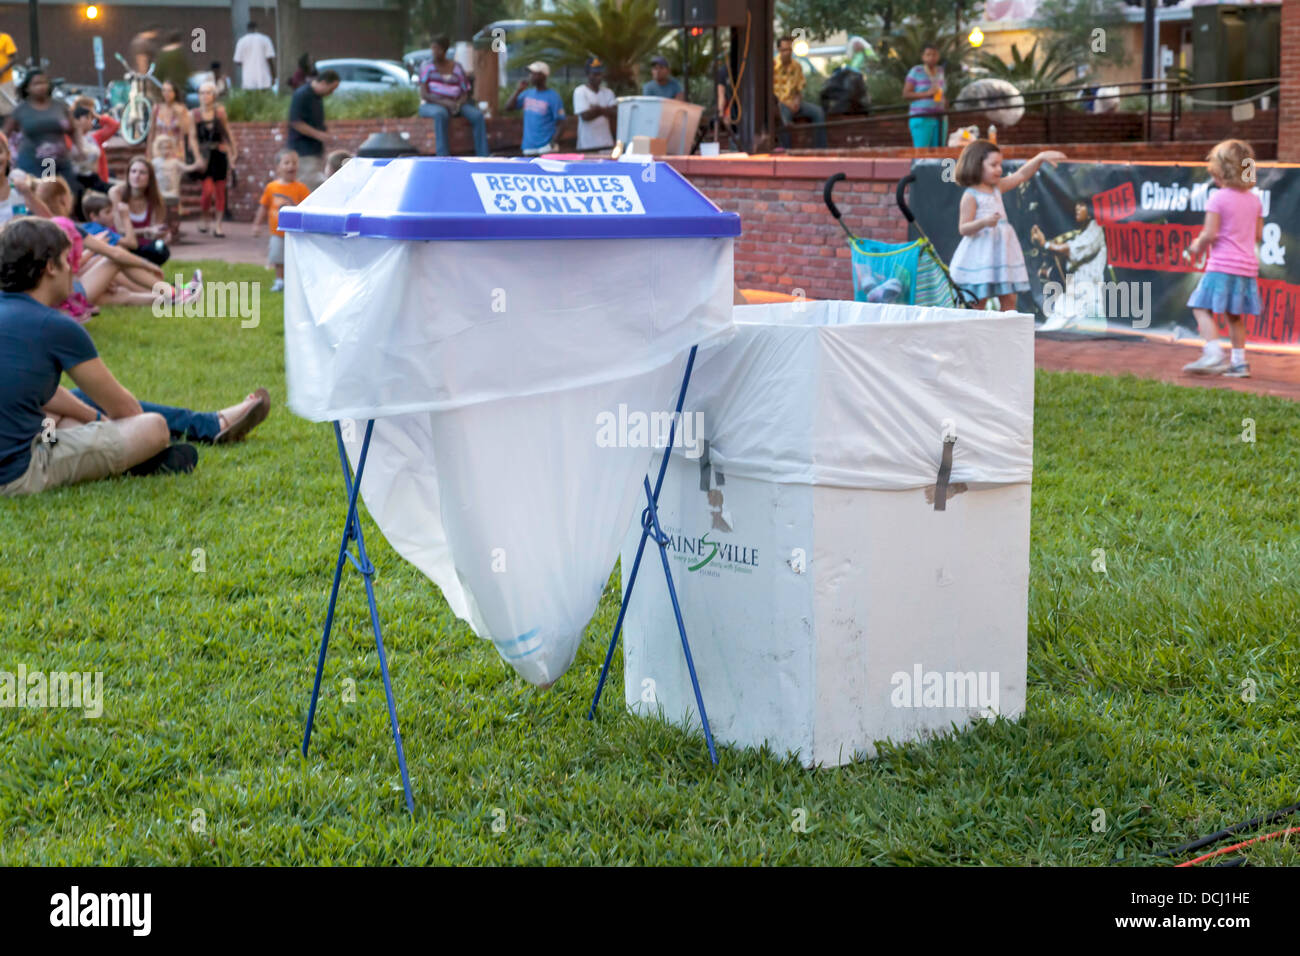 Collapsible portable recyclable trash bins and box at outside public event. Stock Photo